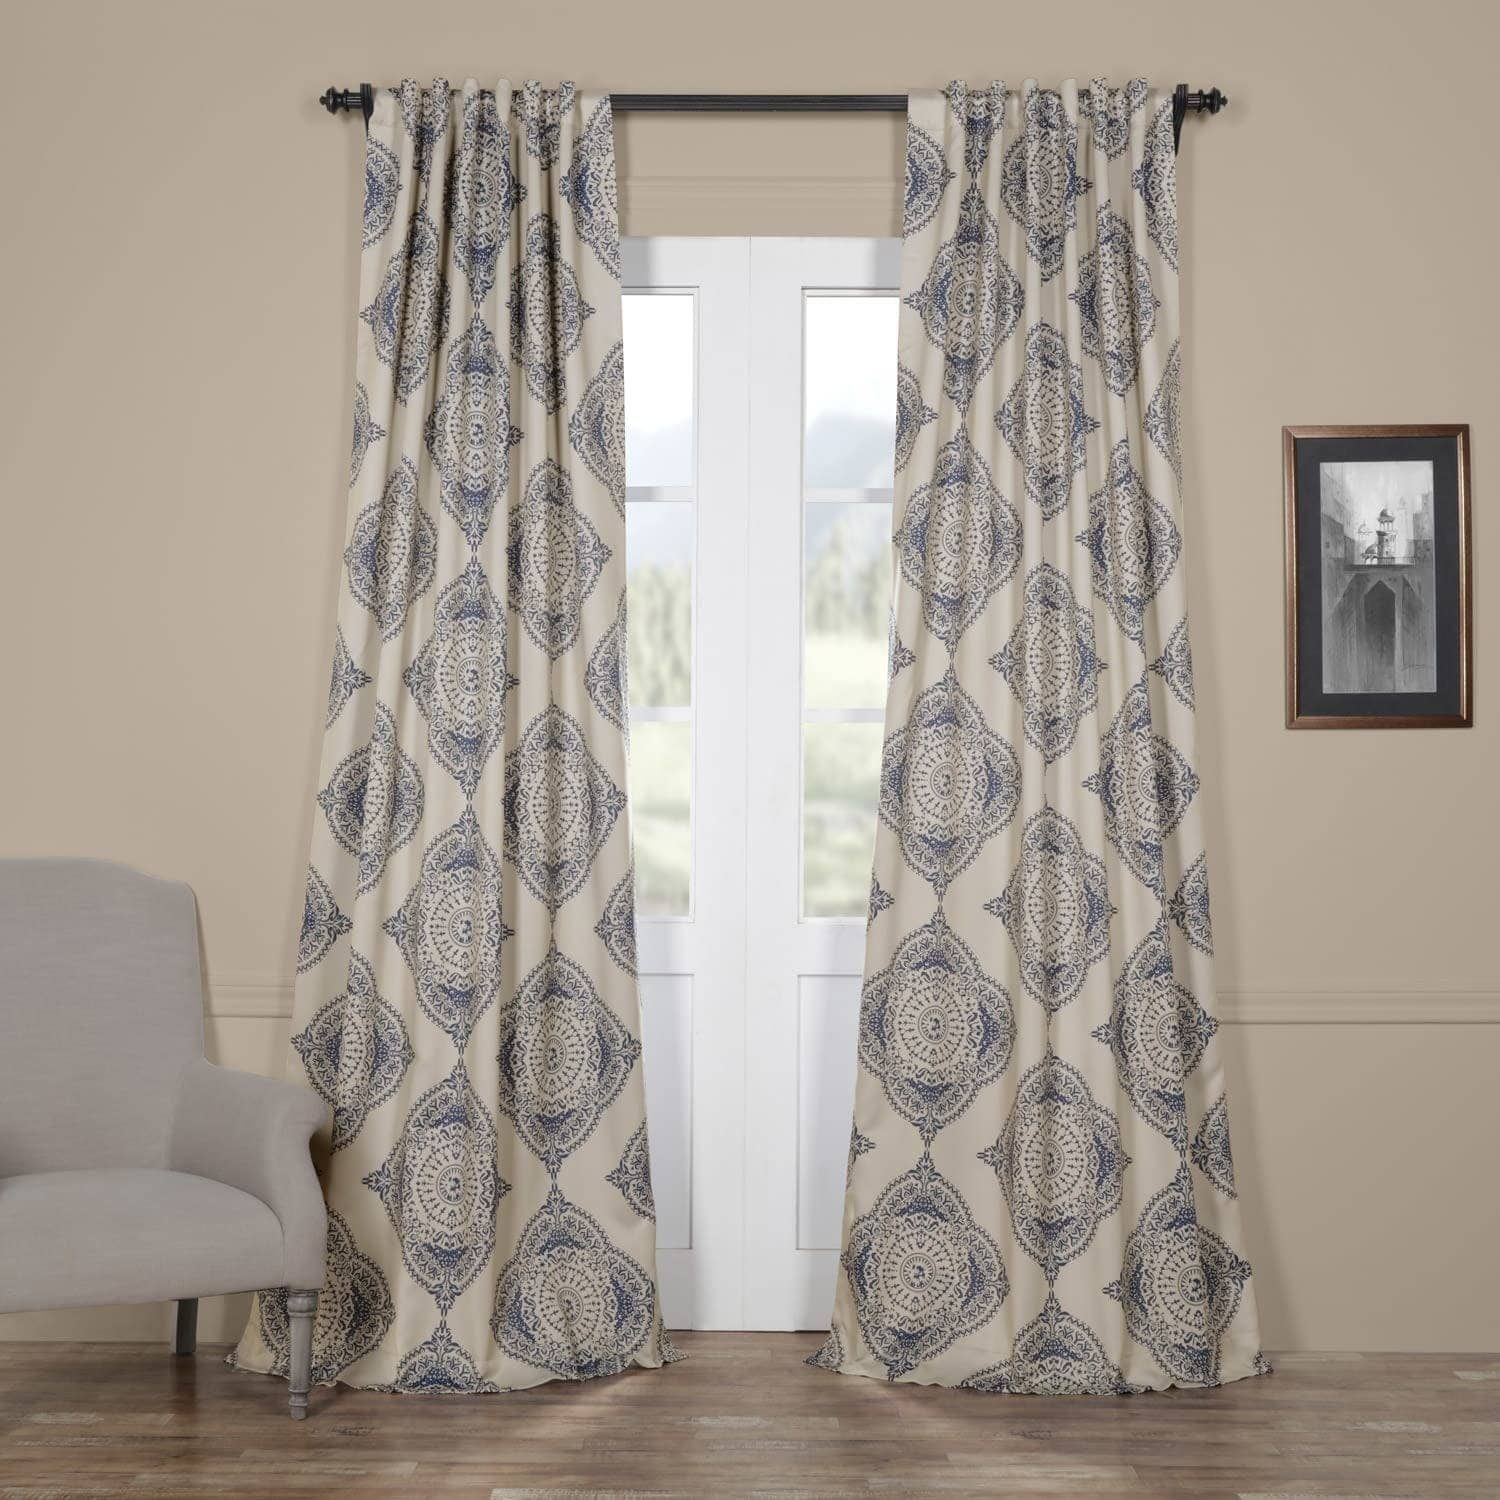 Exclusive Fabrics Moroccan Style Thermal Insulated Blackout In Moroccan Style Thermal Insulated Blackout Curtain Panel Pairs (View 7 of 20)